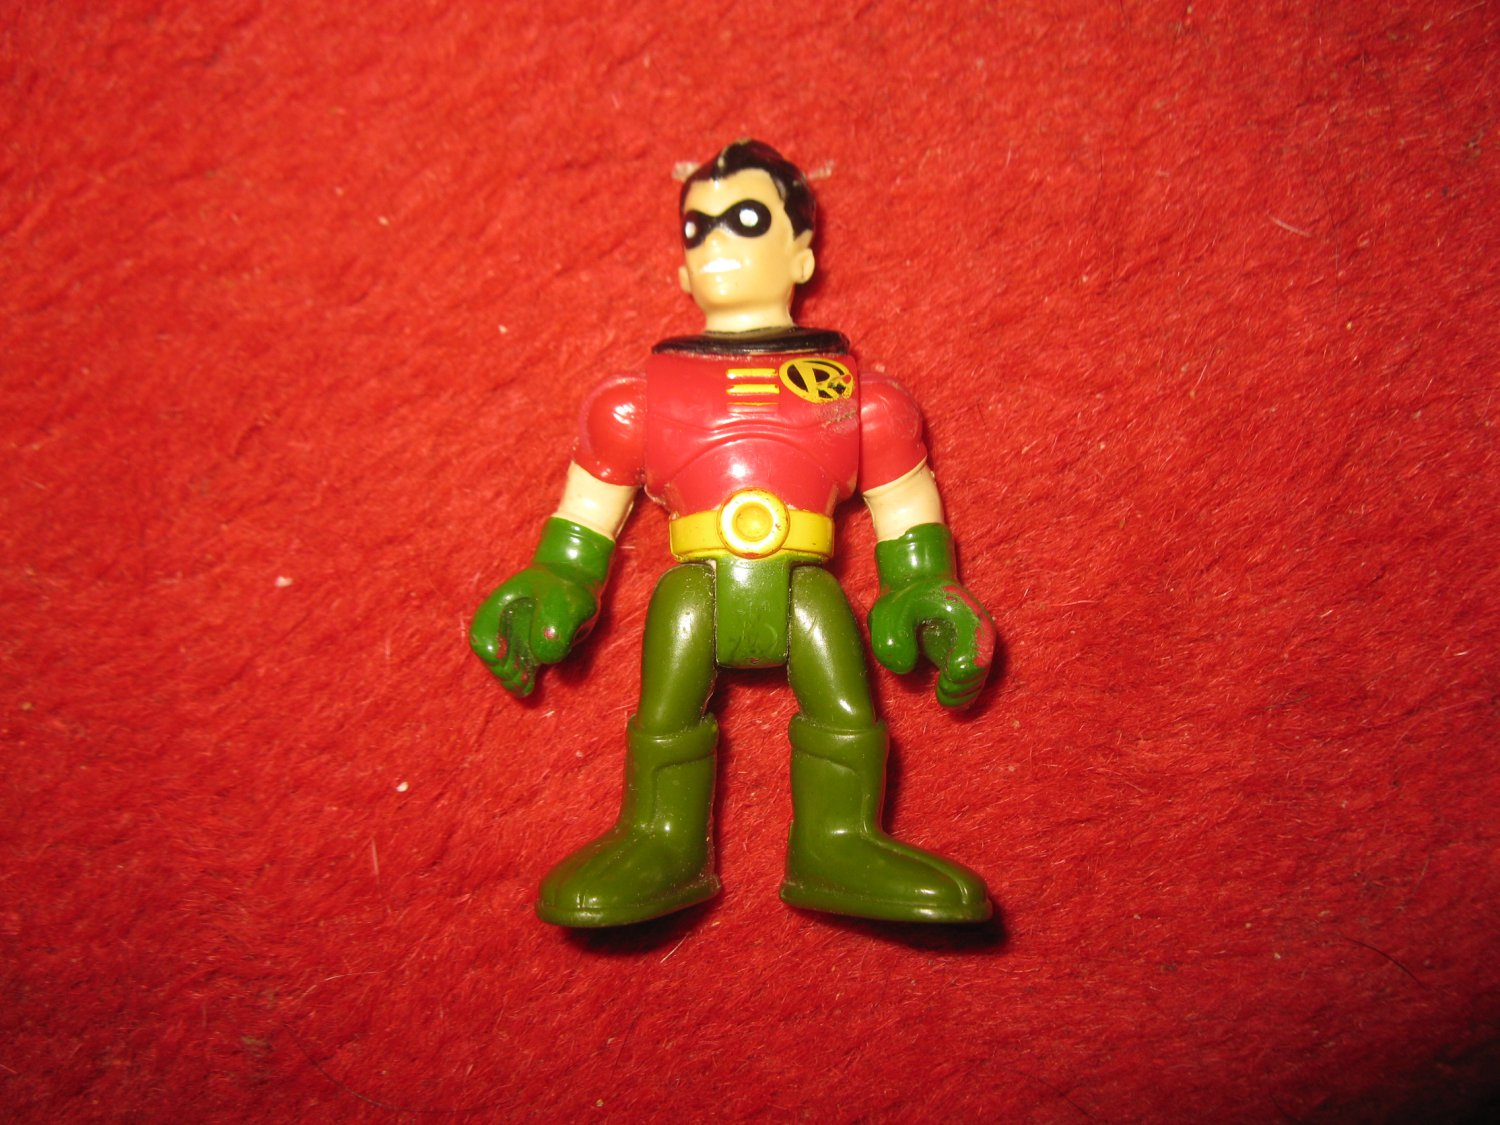 2008 DC Comics Mini Action Figure: Robin the Boy Wonder